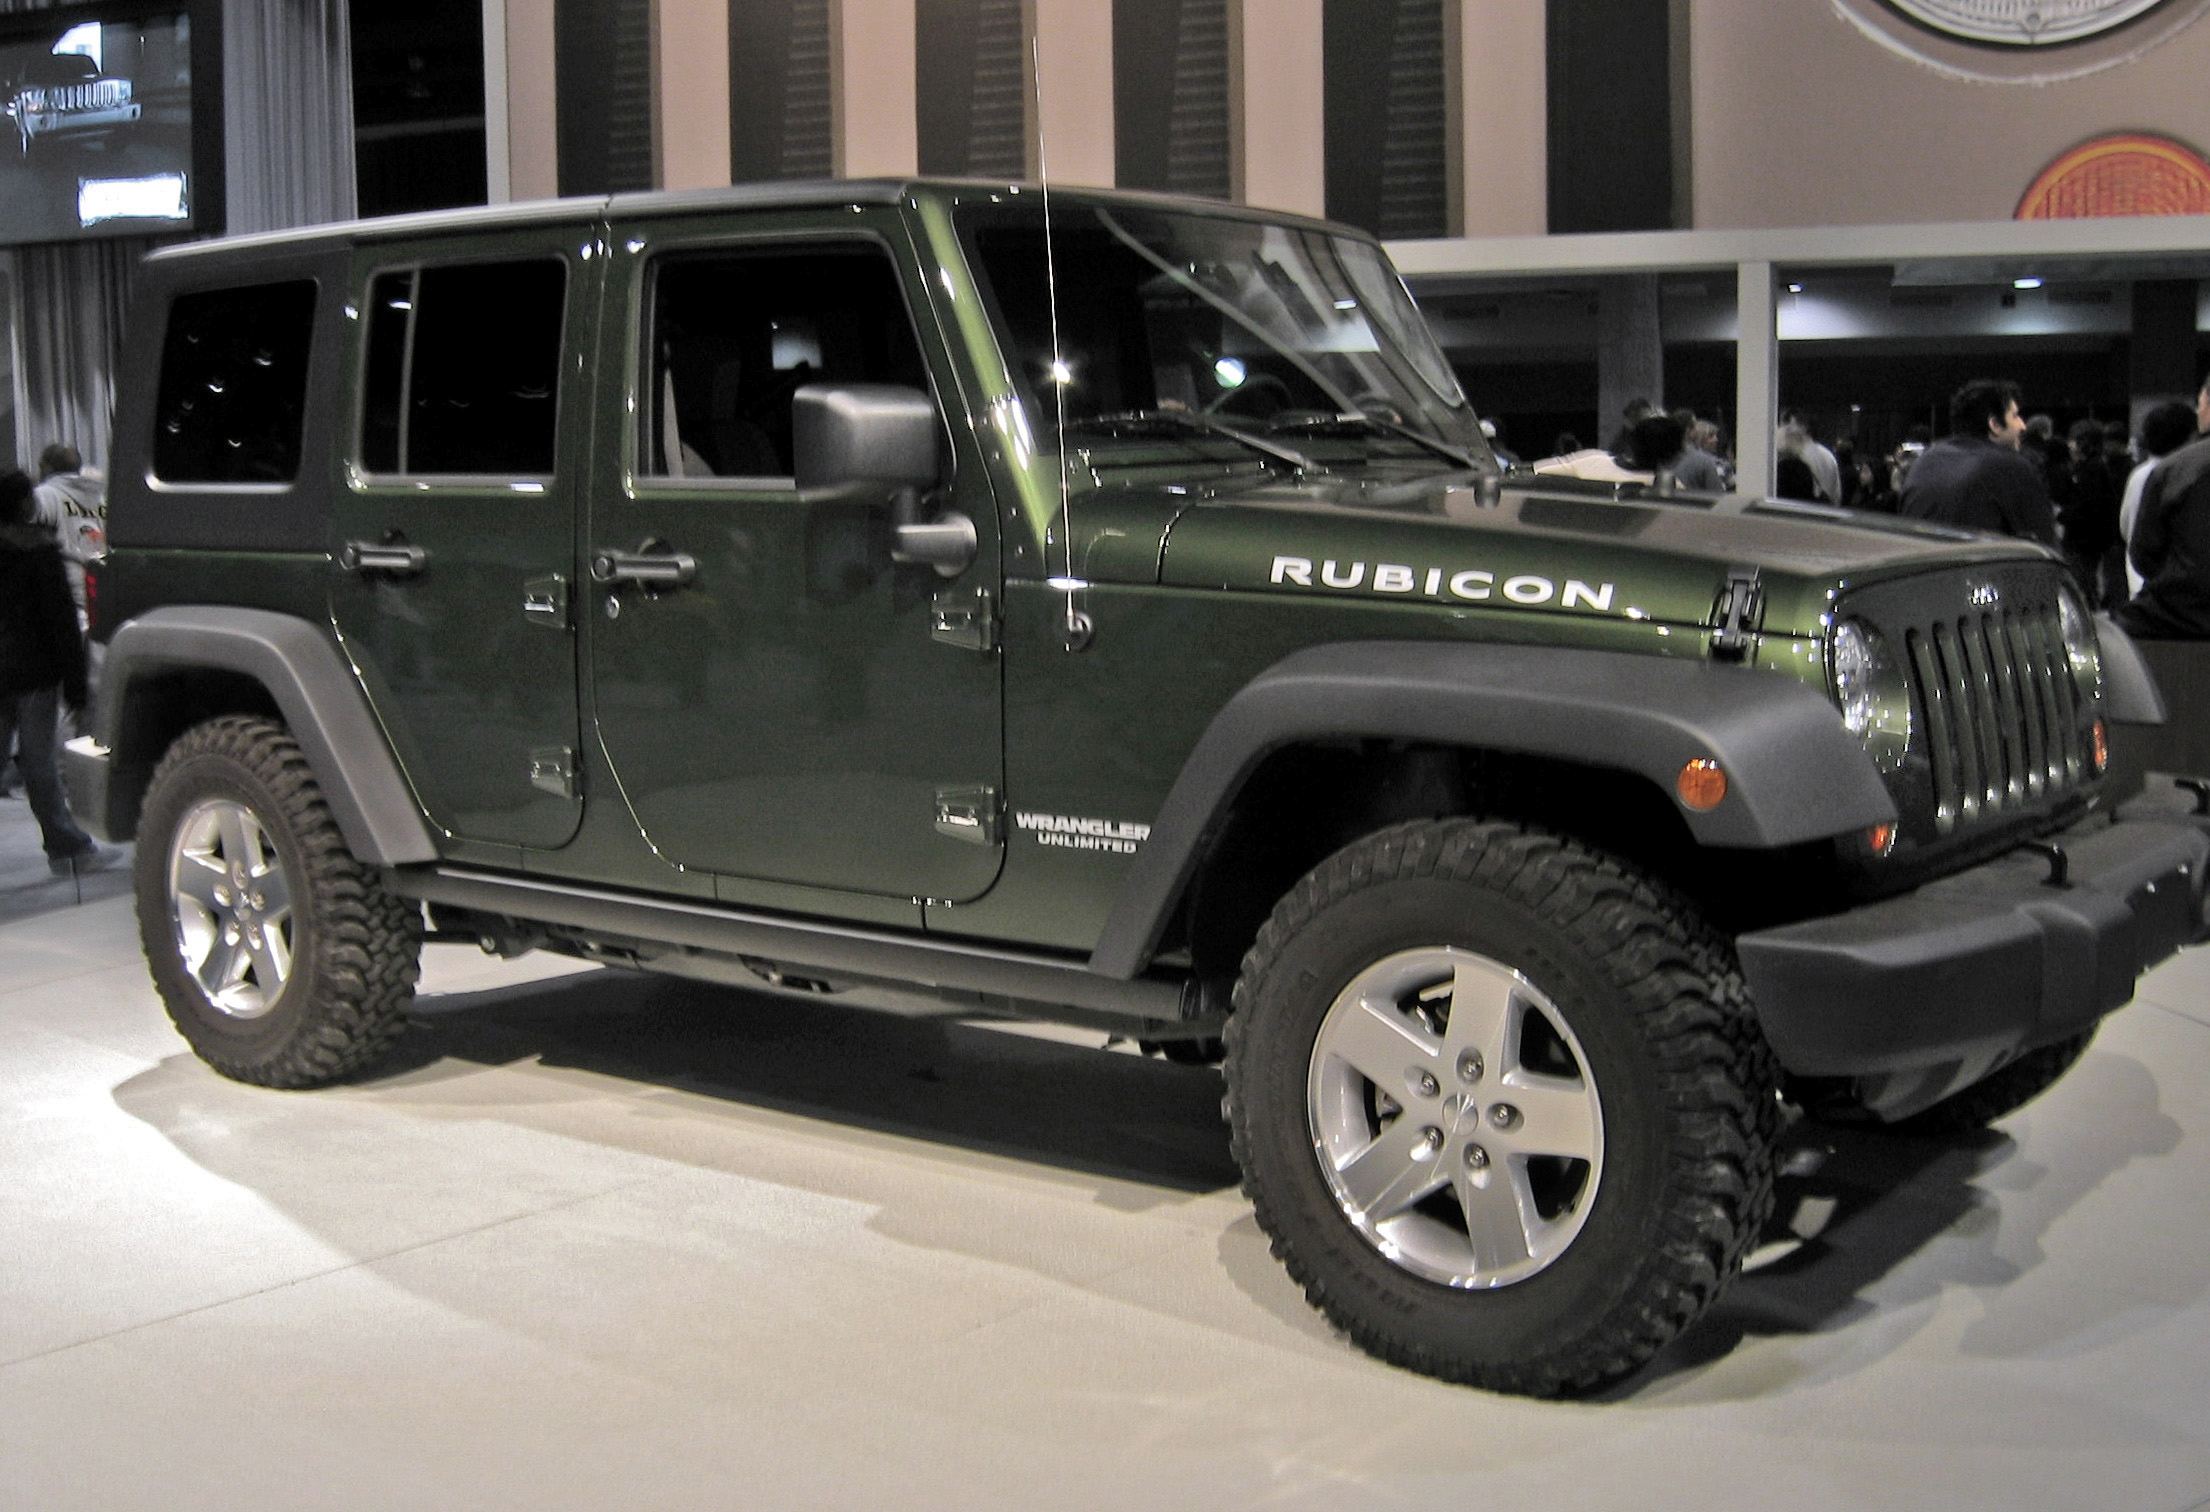 Jeep Rubicon 2007 Washauto Screensavers For Iphone